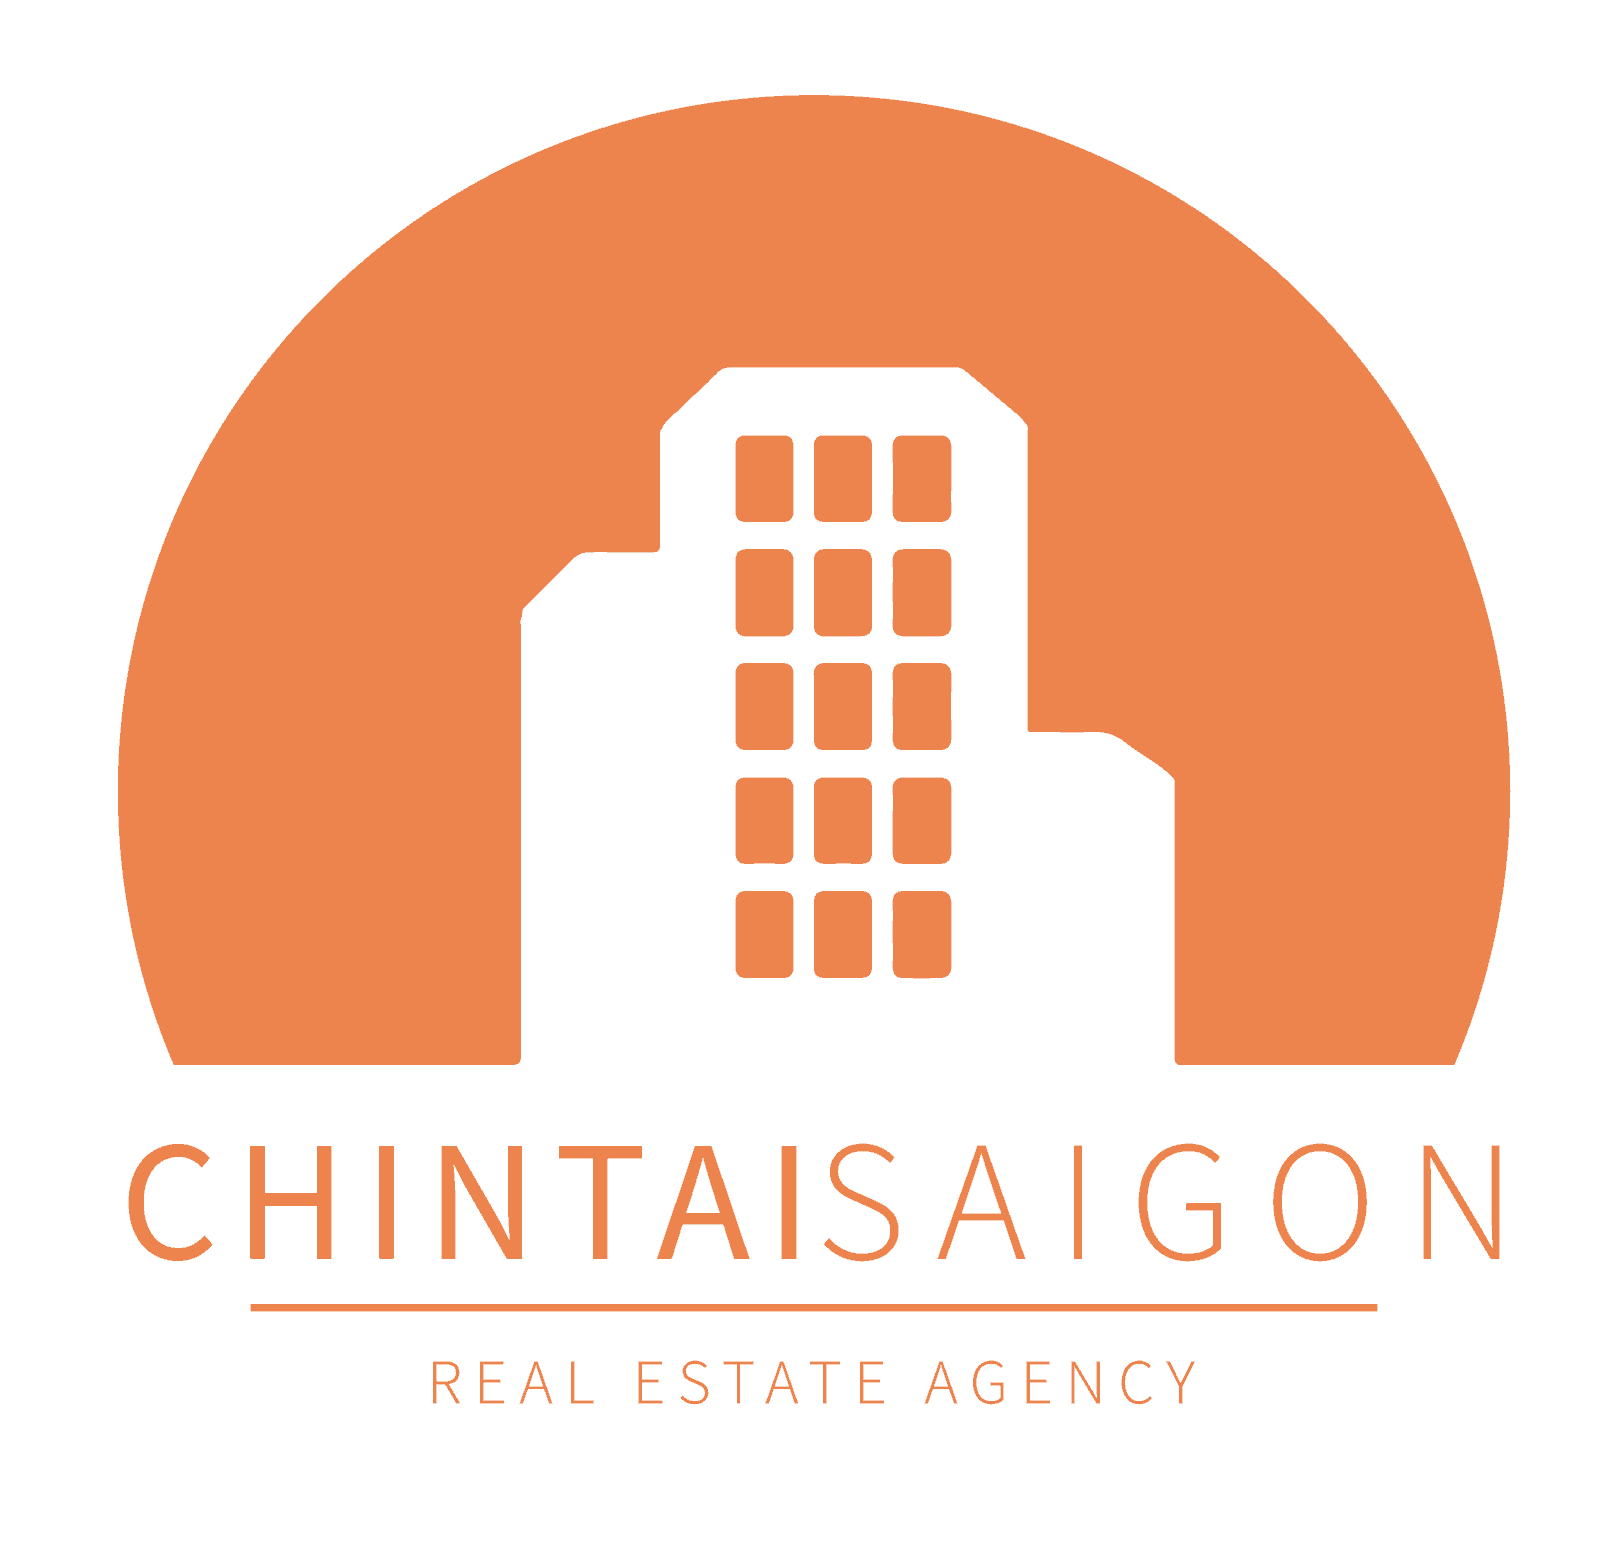 Chintaisaigon